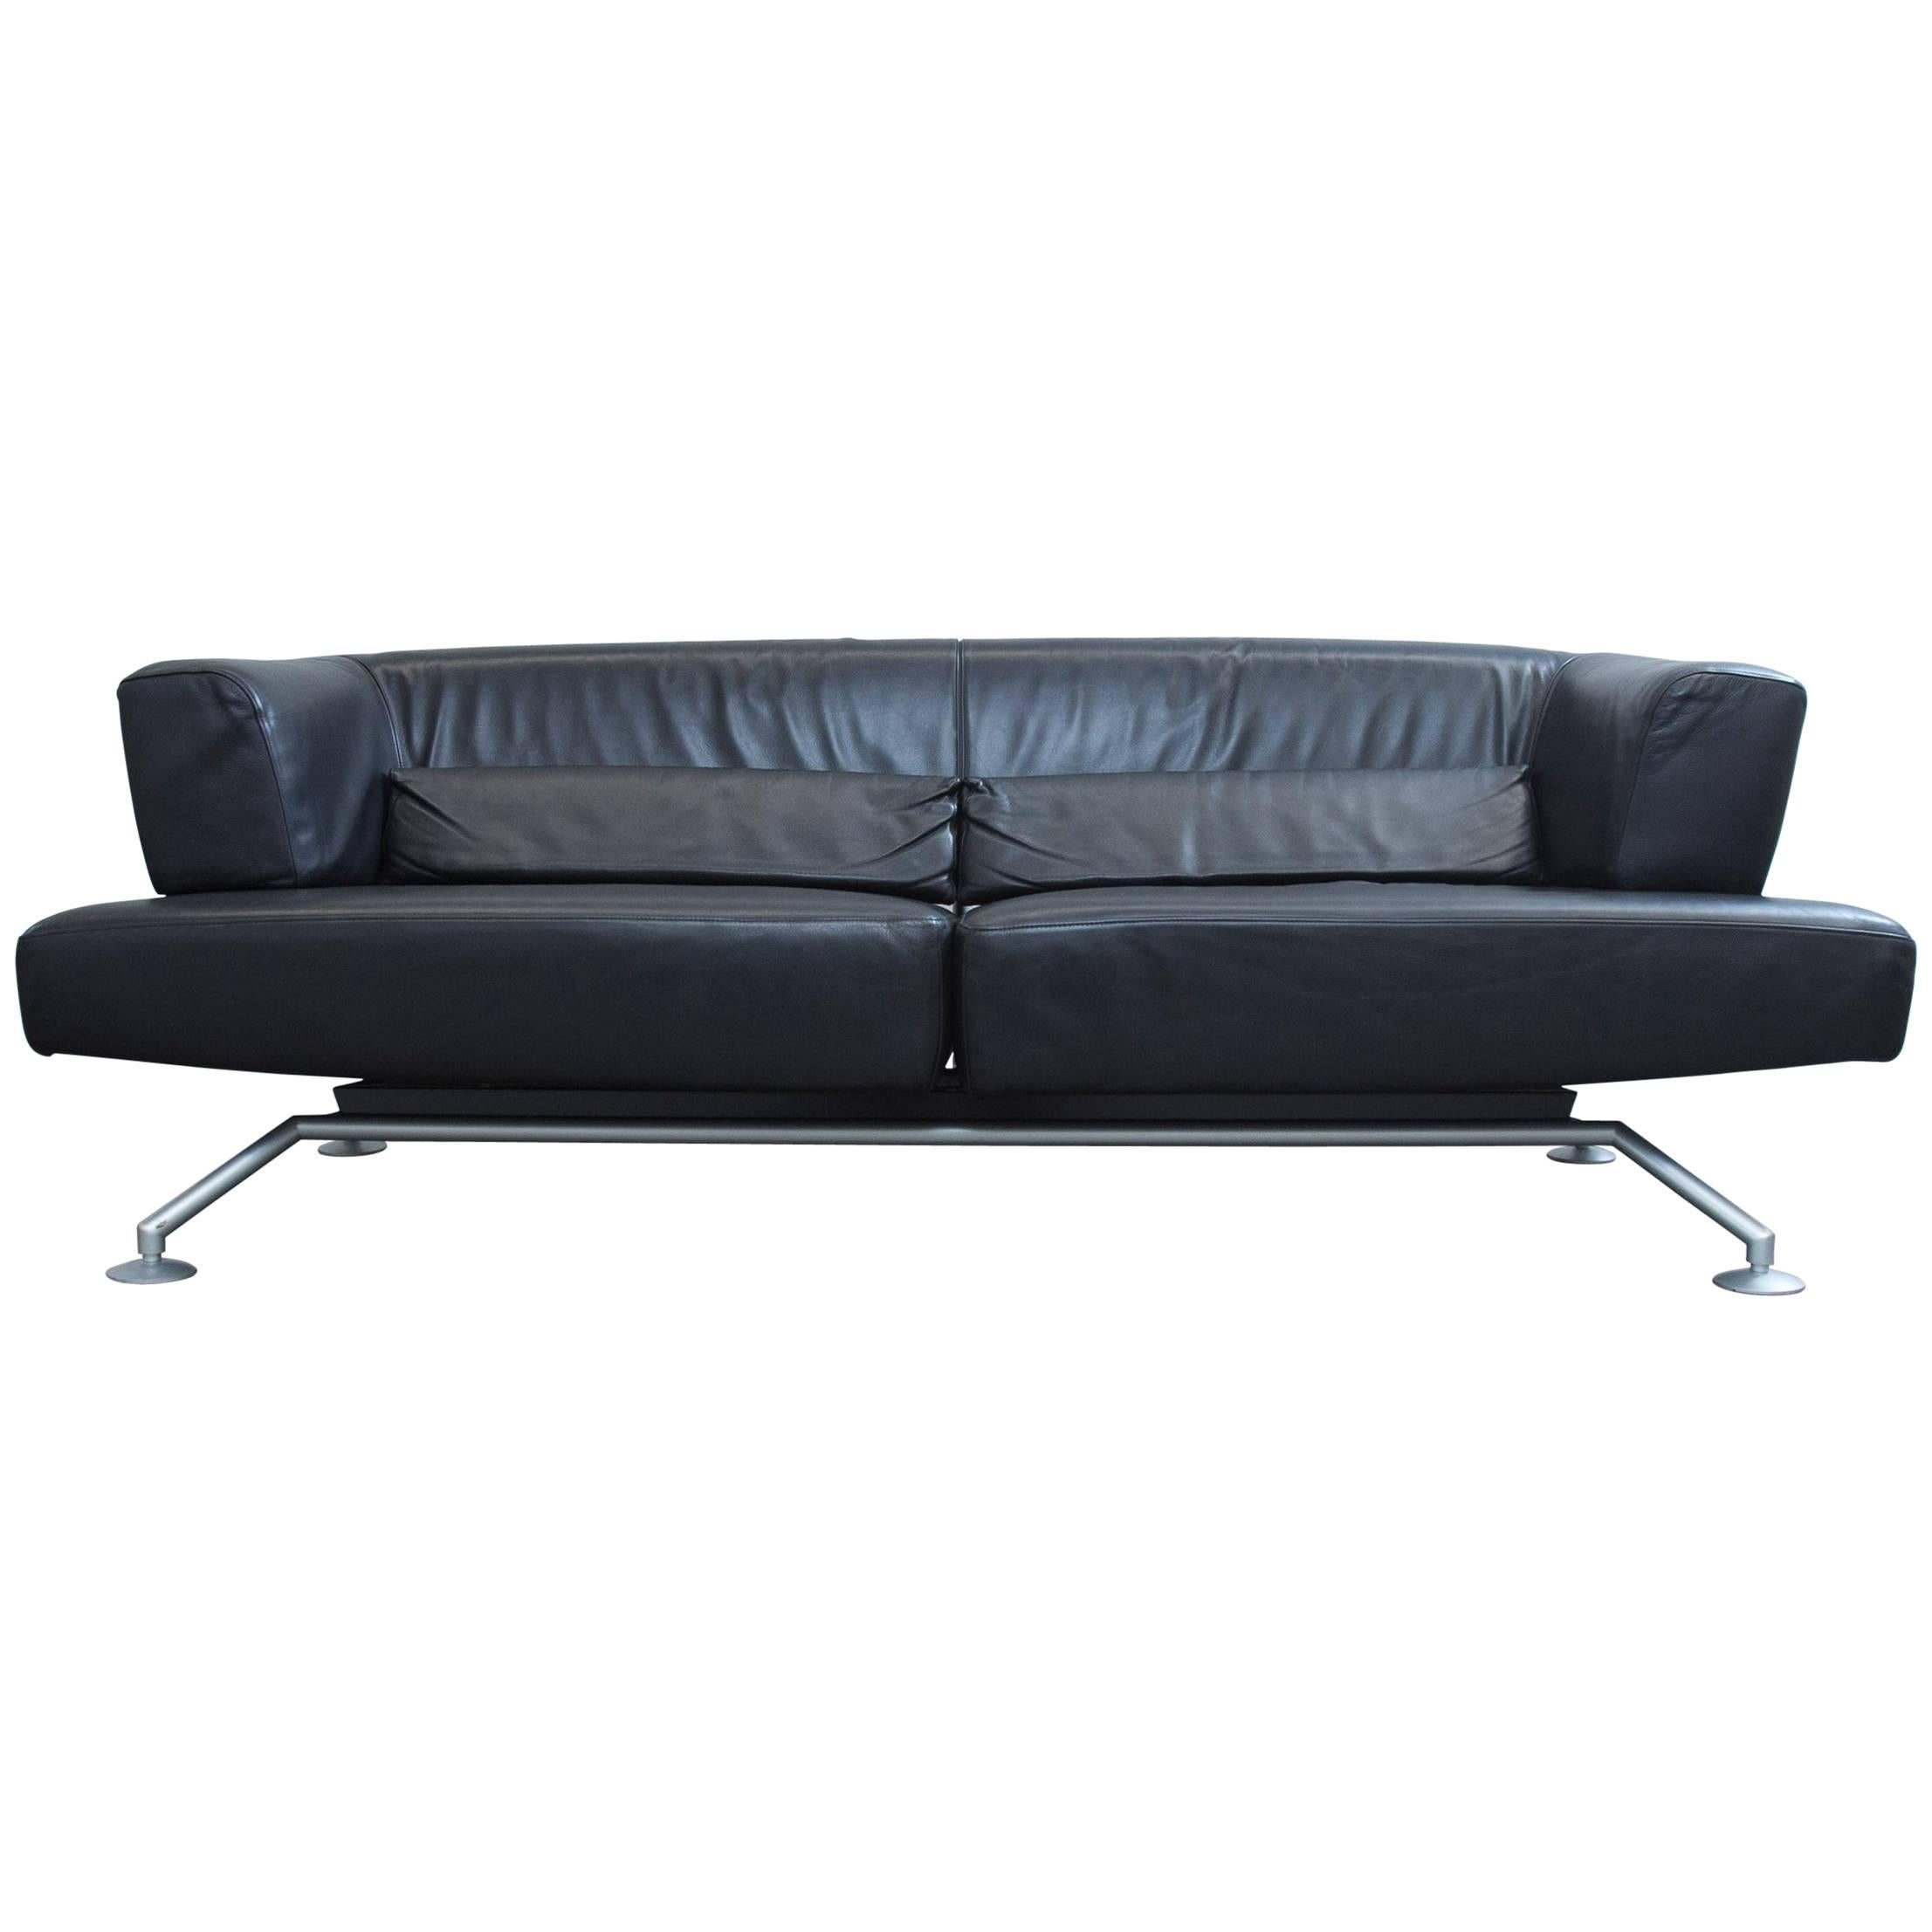 COR Circum Designer Sofa Black Leather Three Seat Couch Function Modern 1 Nice Design